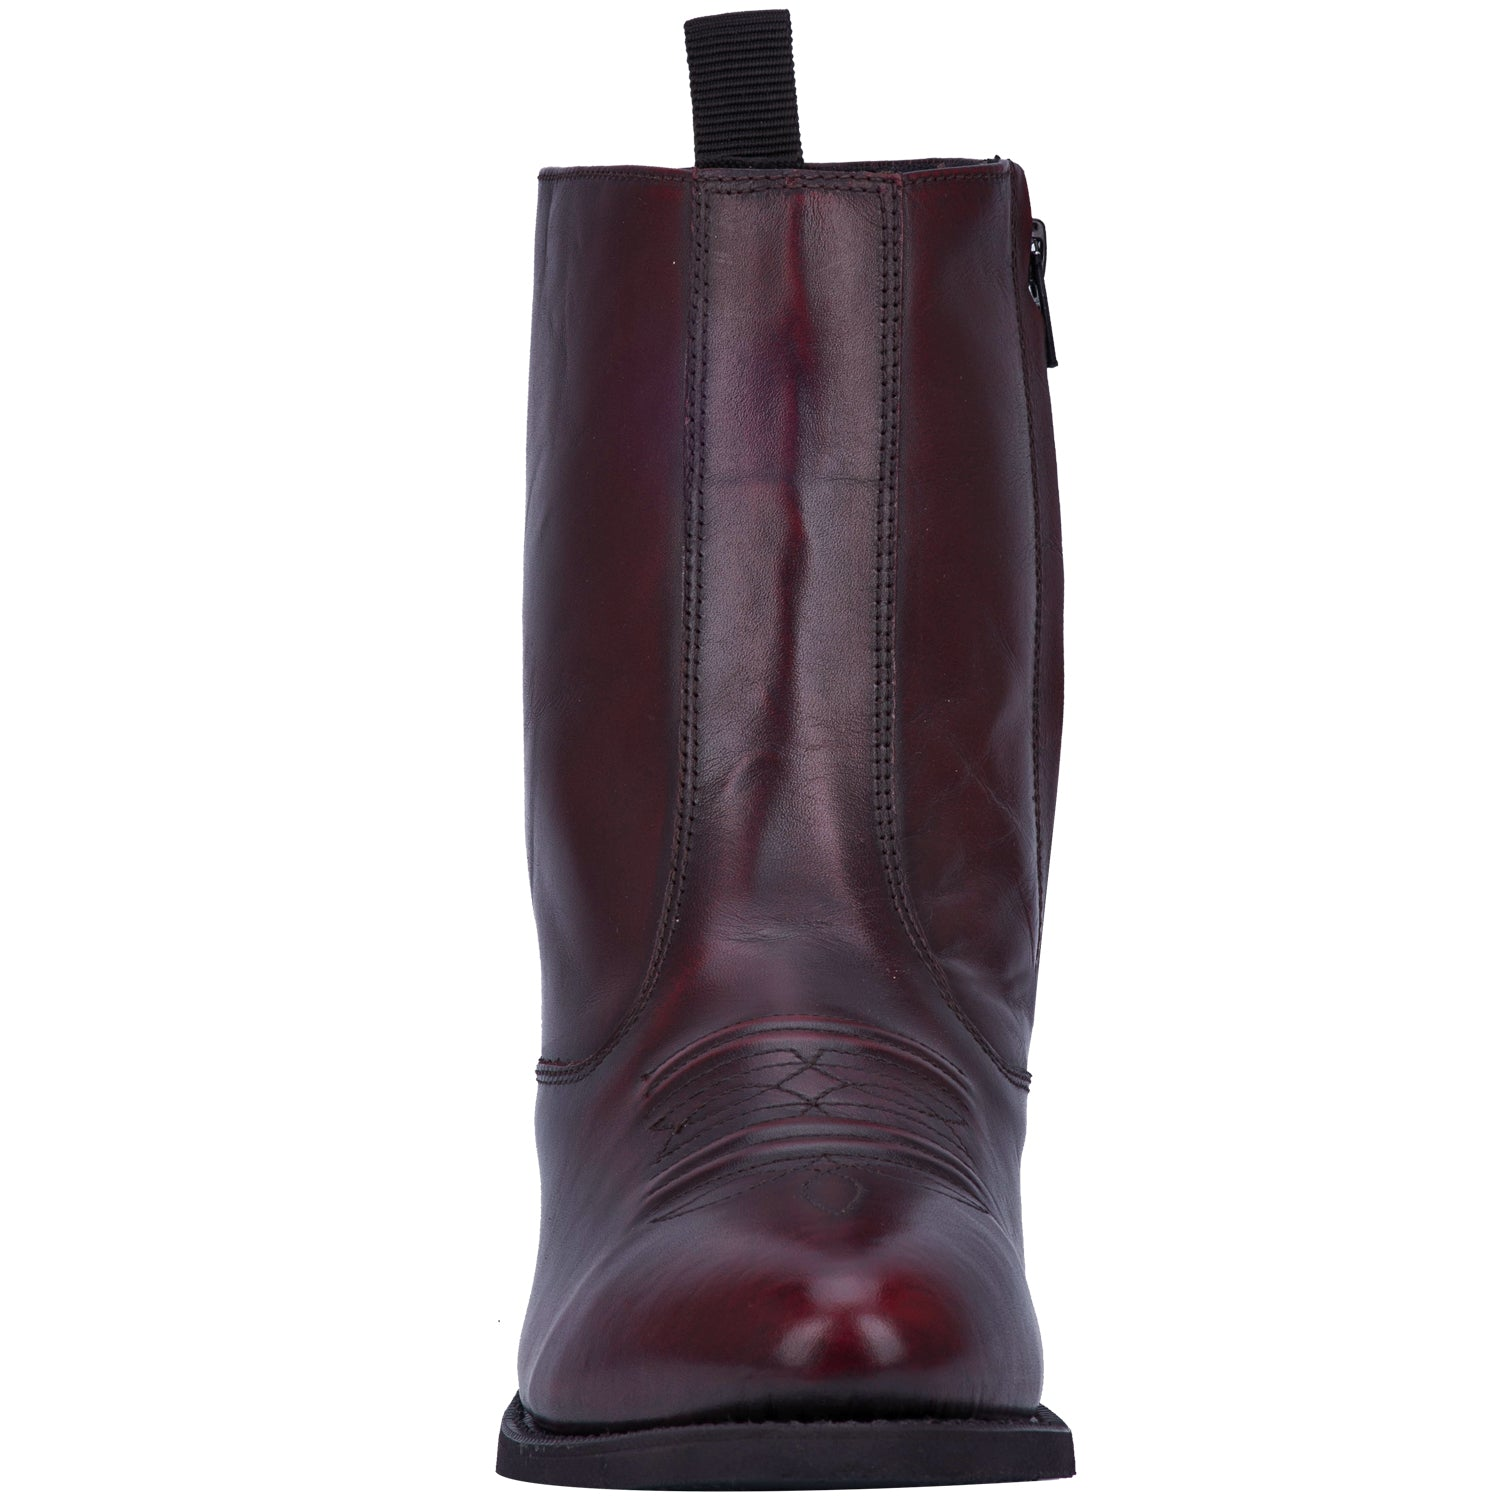 FLETCHER LEATHER BOOT 5789493264426